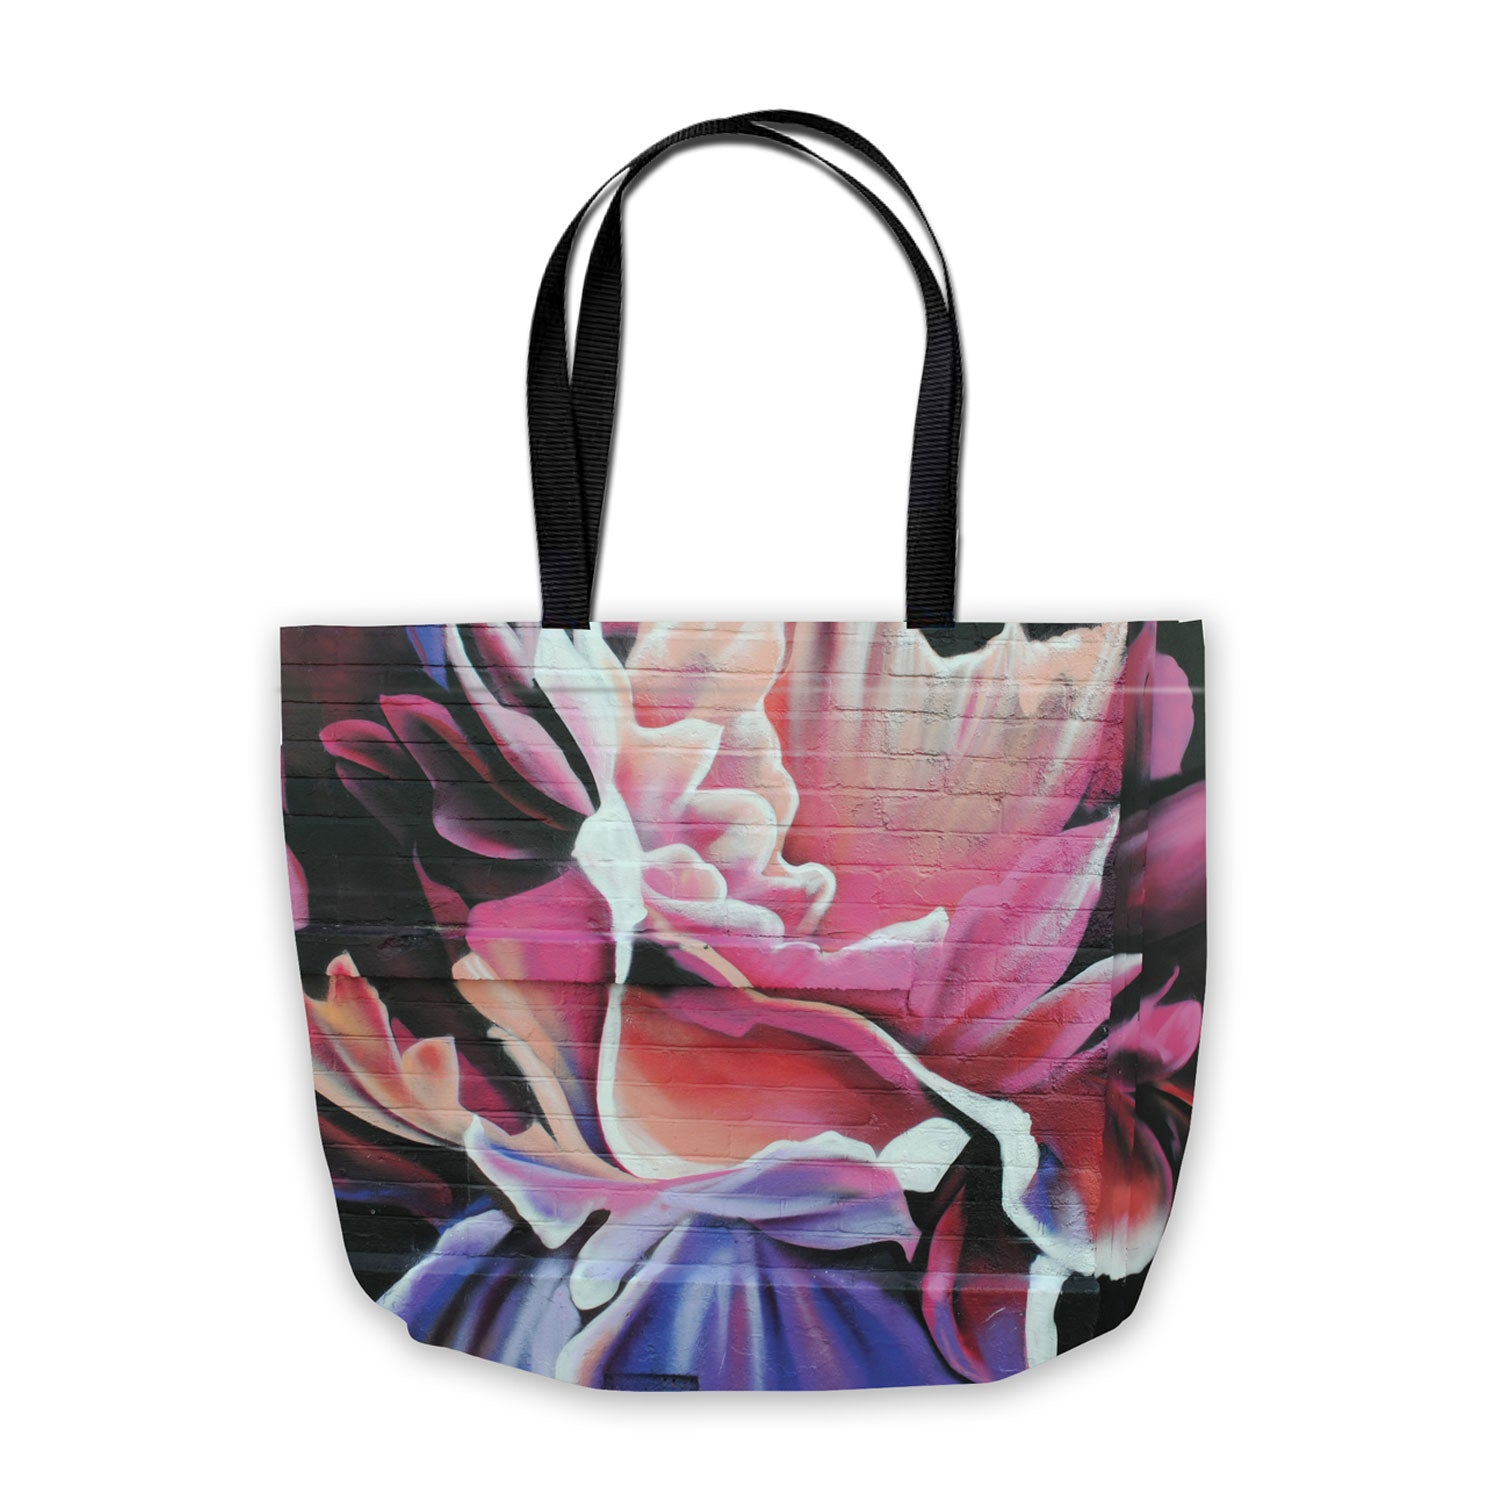 shopping bag with spraypaint flower design in black, red and purple